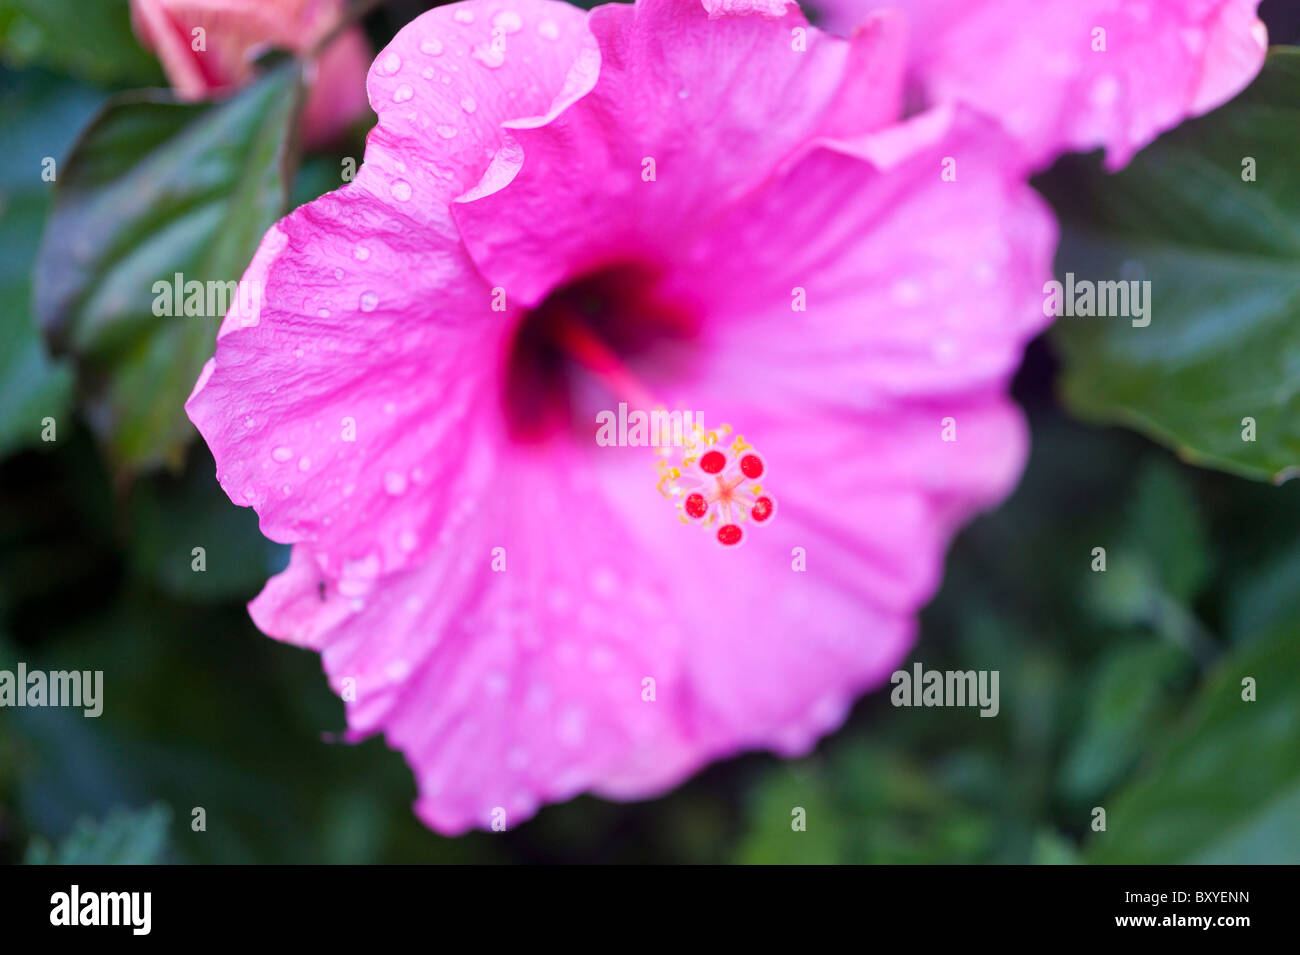 Magenta Hibiscus flower with drops of rain - Stock Image